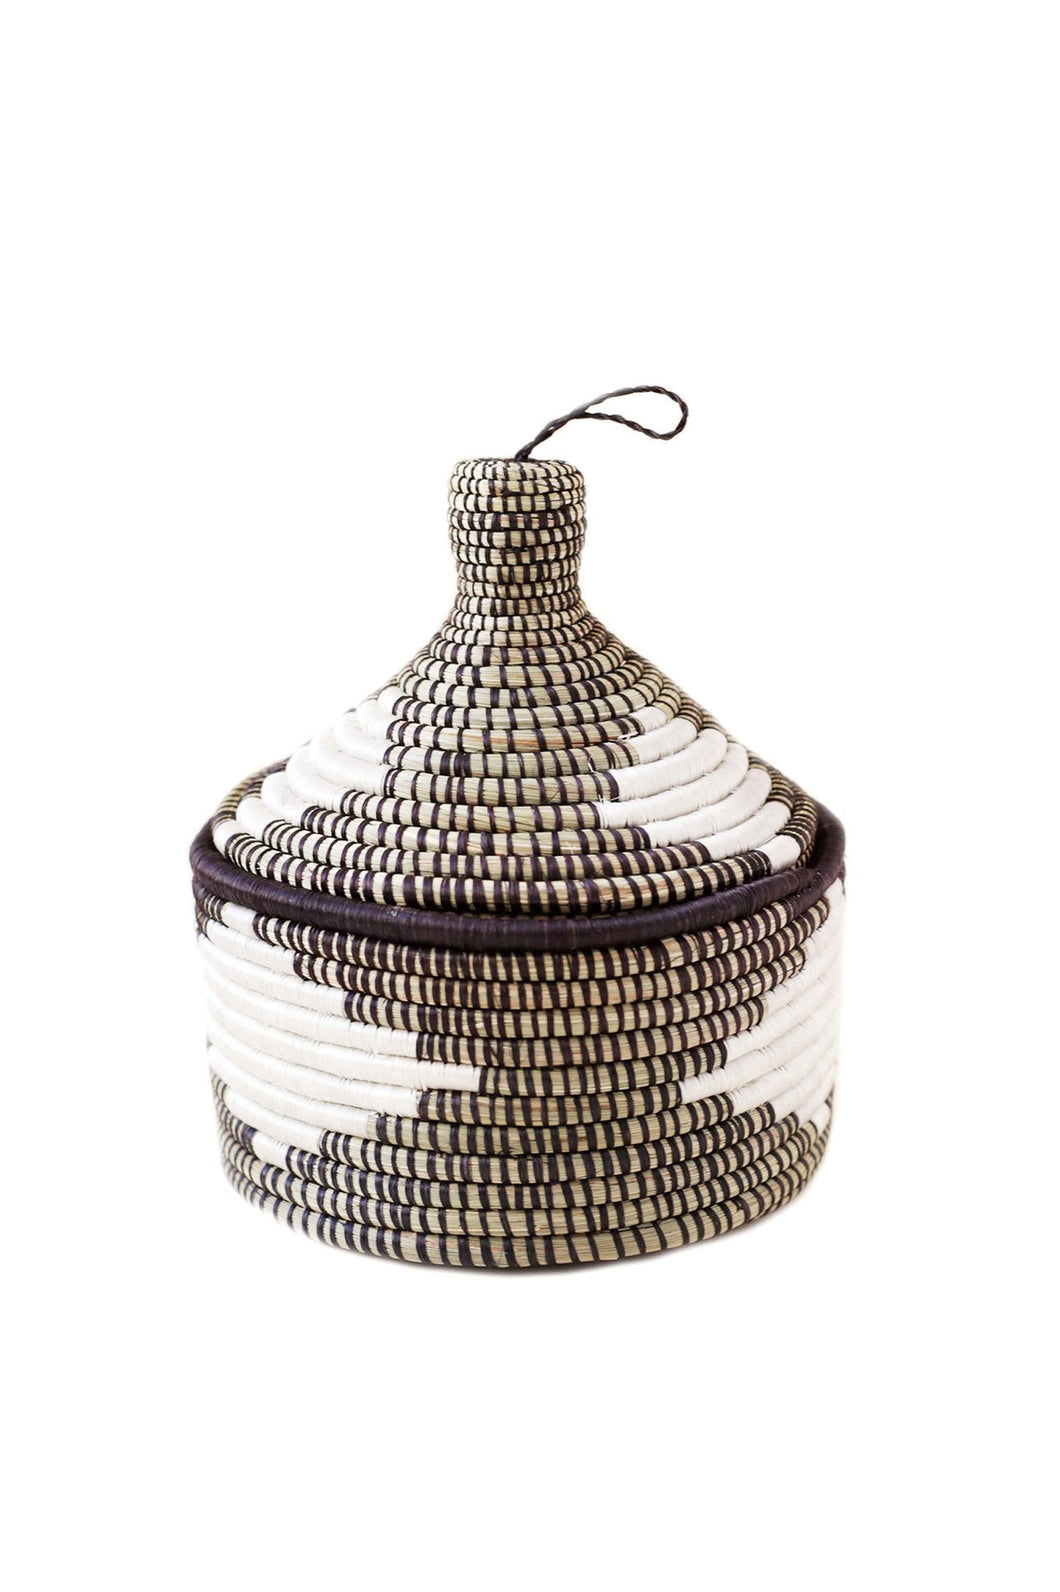 Marrakech Geometric Woven Basket